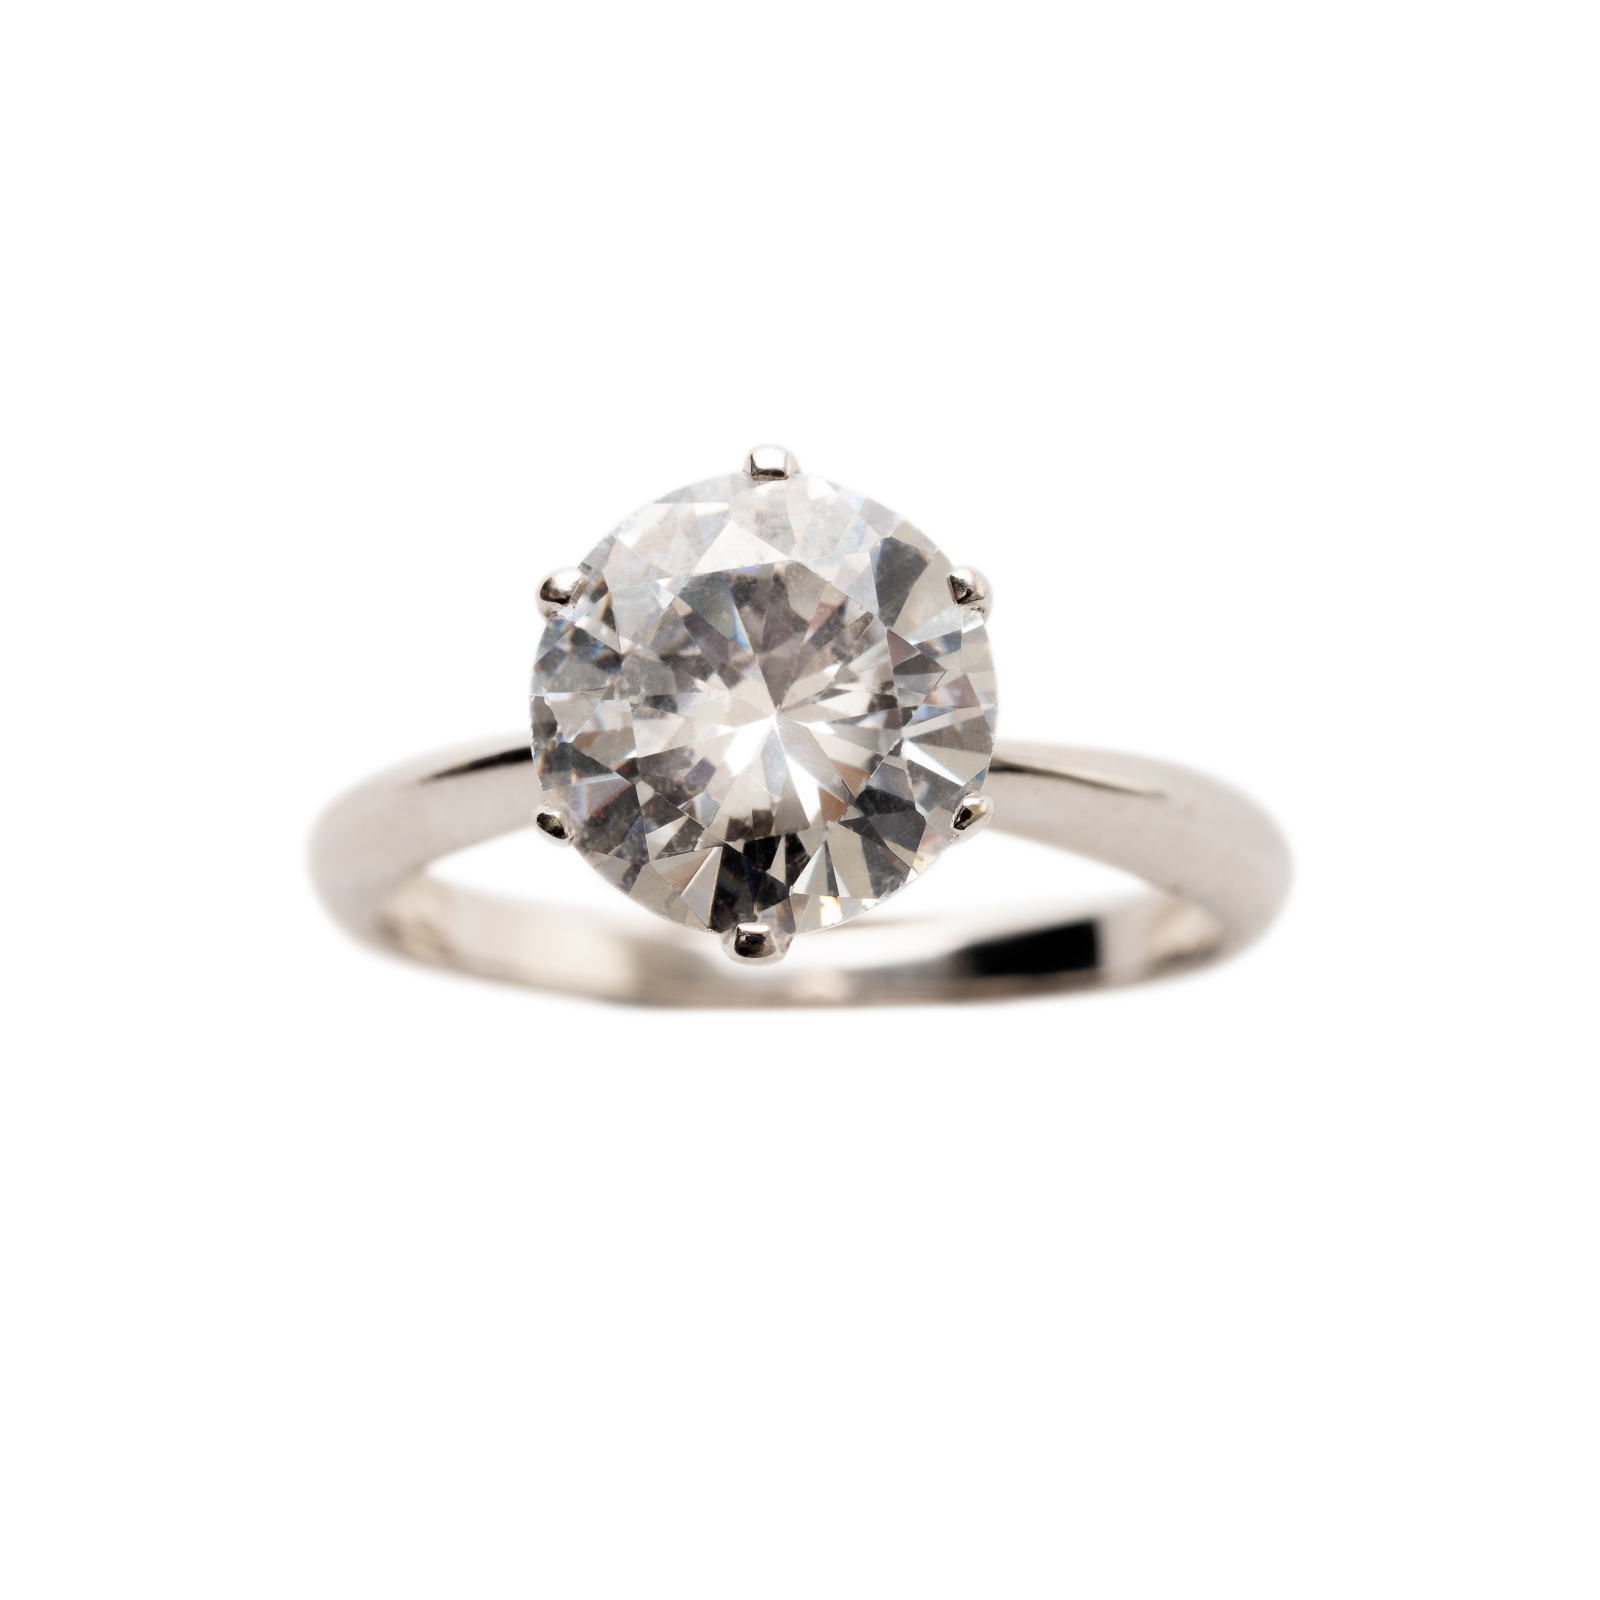 SOLITAIRE RING PRICE UPON REQUEST   18 kt gold with 2 kt River diamond